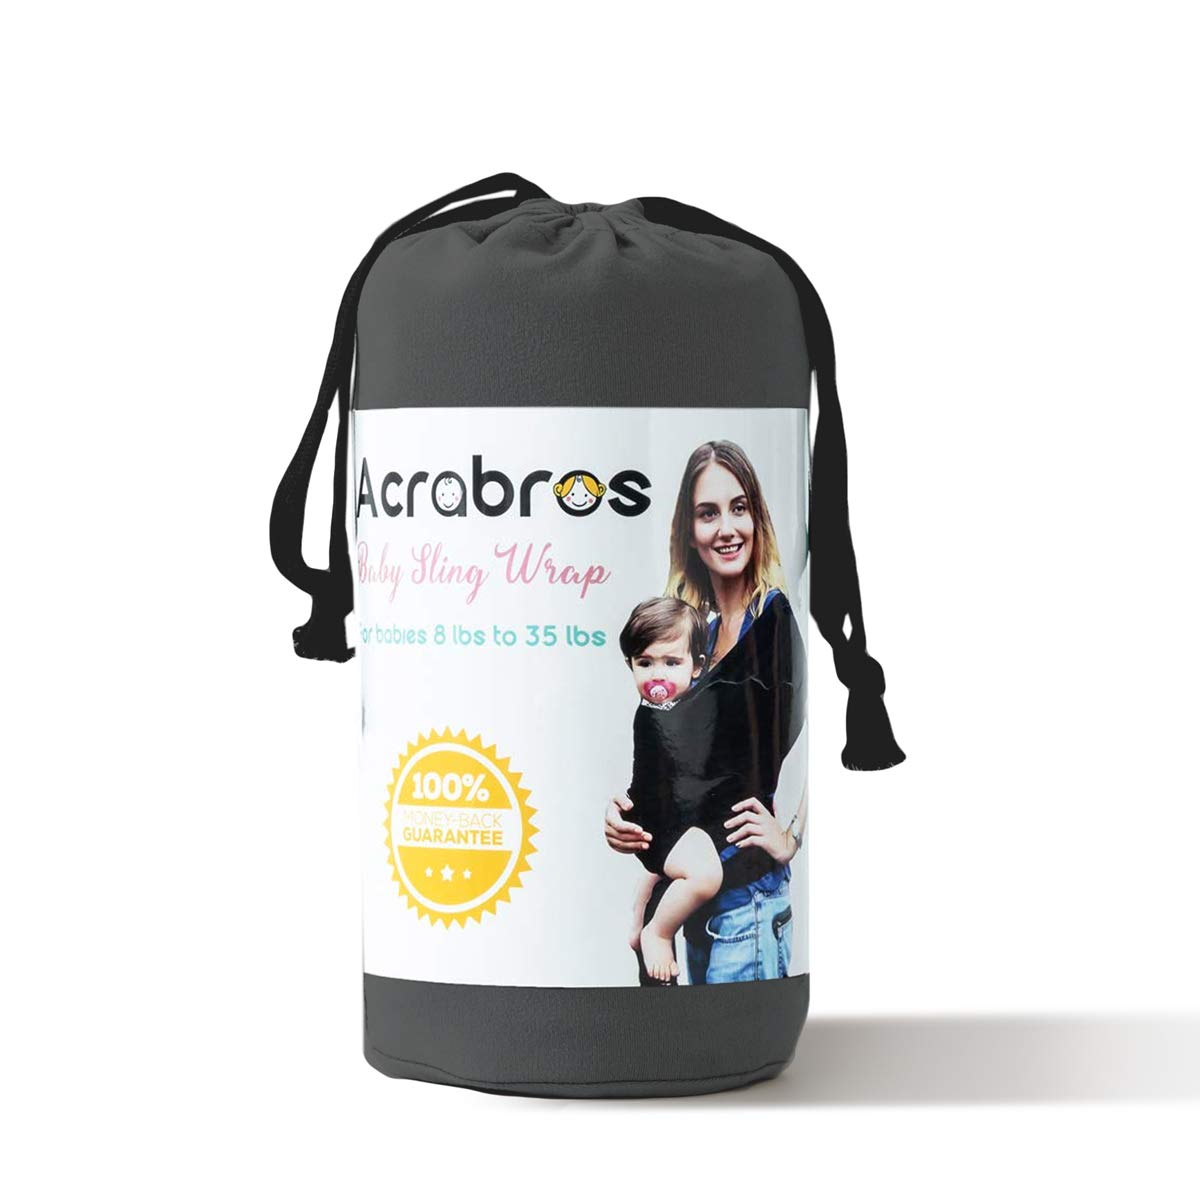 Acrabros Baby Wrap Carrier,Hands Free Baby Carrier Sling,Lightweight,Breathable,Softness,Perfect für Newborn Infants und Babies Shower Gift,Charcoal Grey